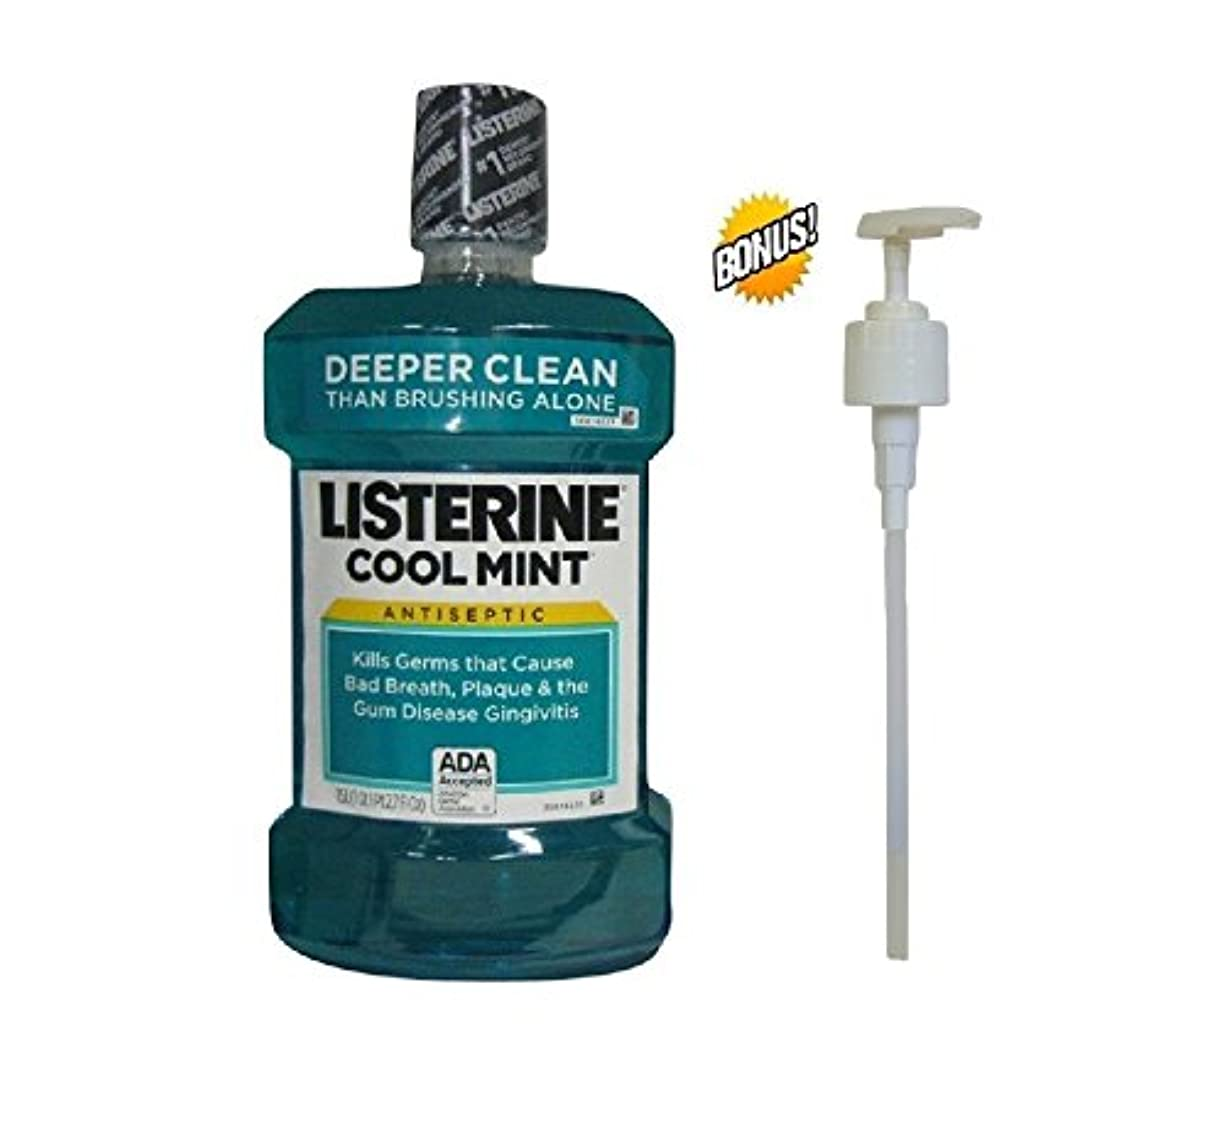 シェーバー同種の開発Cool Mint Listerine Antiseptic Mouthwash - PLUS Special Designed PUMP for the Listerine by Listerine